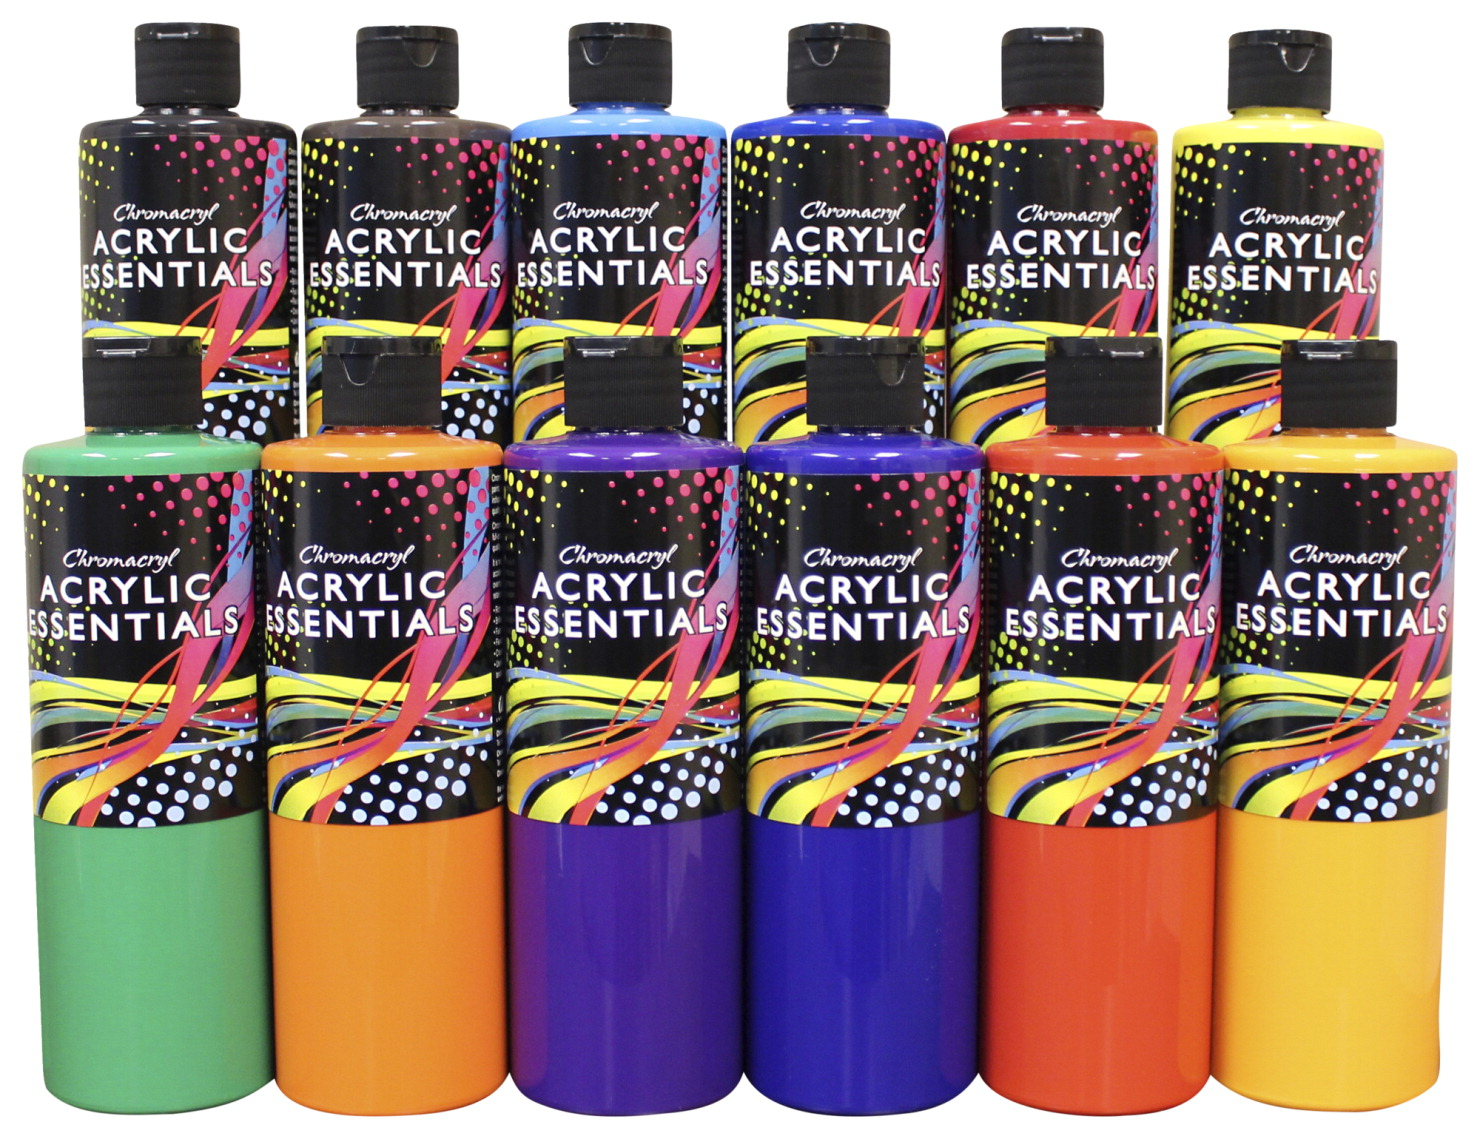 Acrylic essential set school specialty marketplace for Chroma acrylic mural paint review